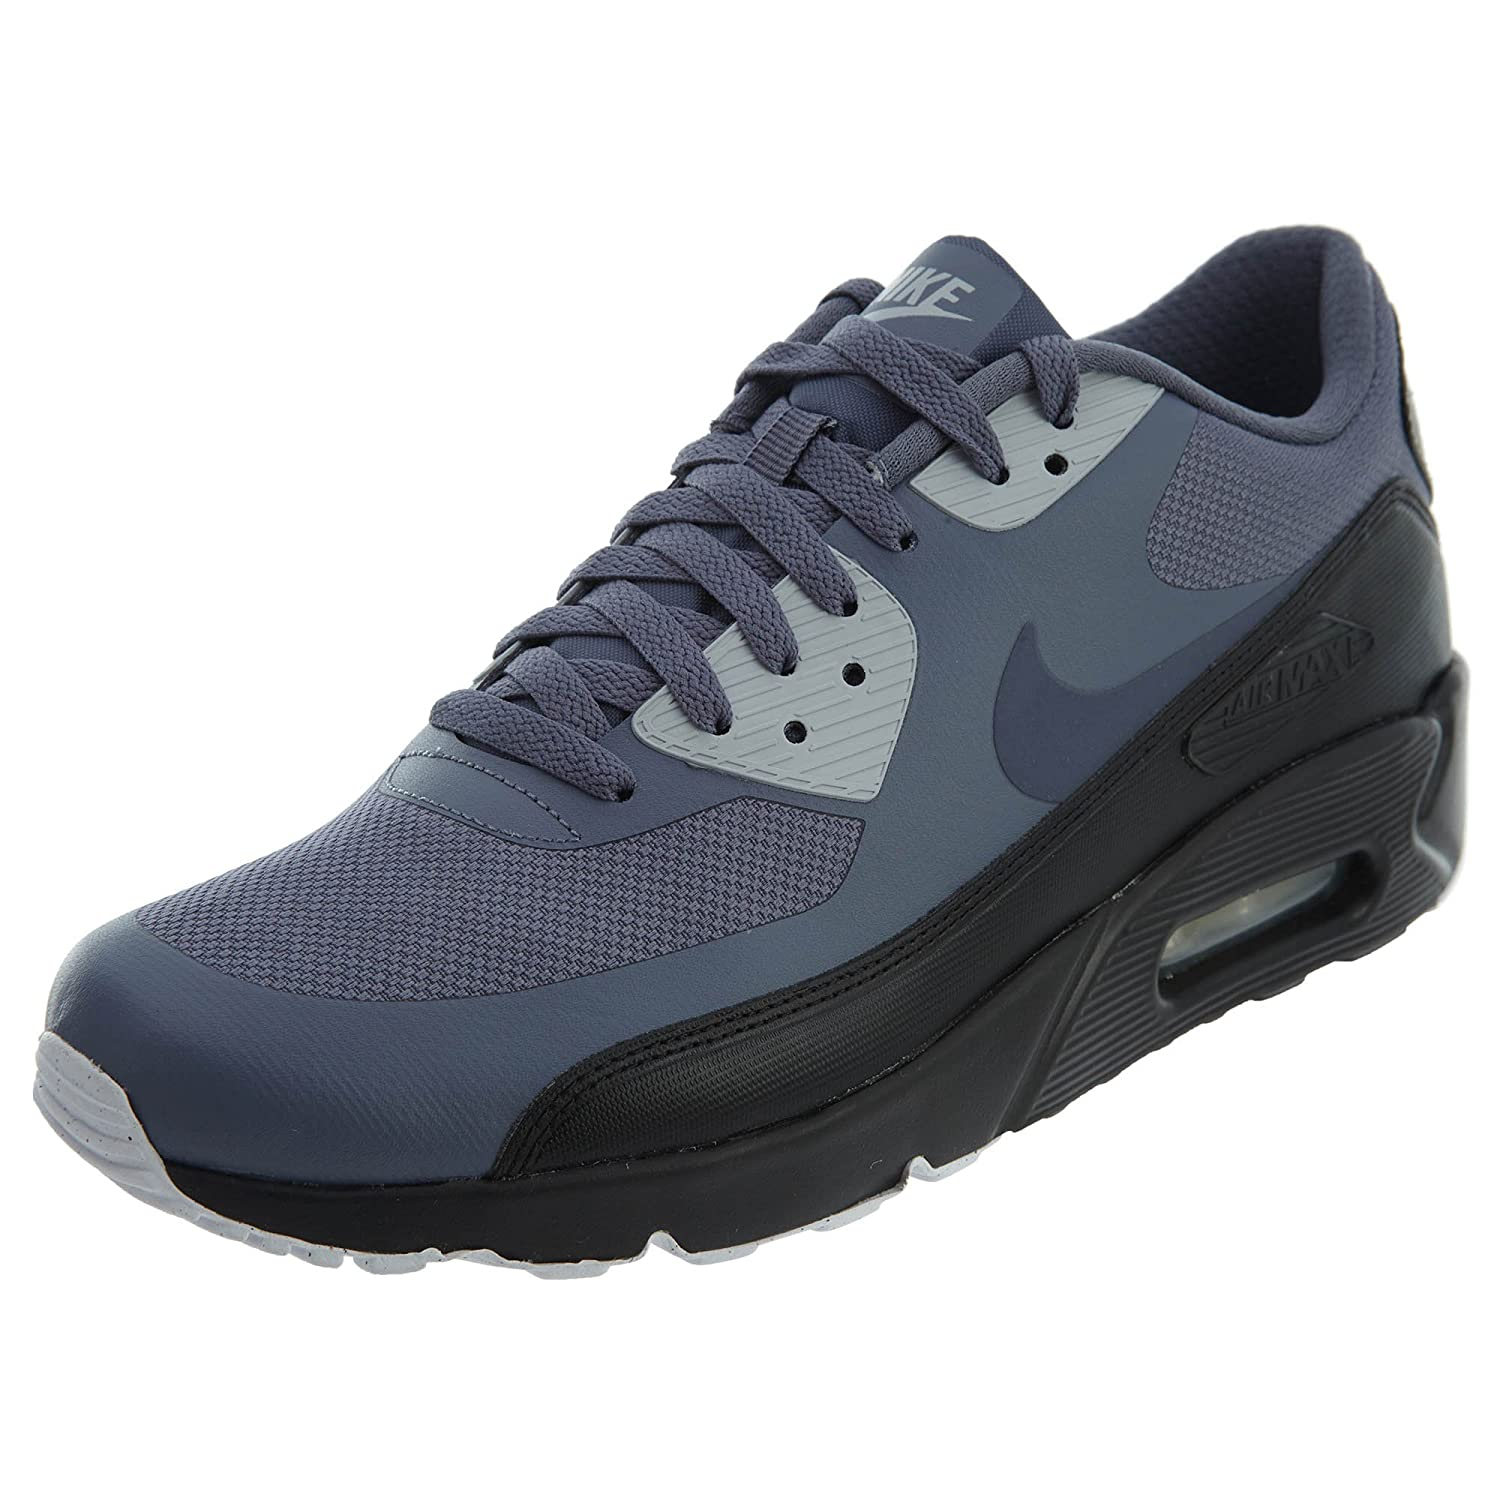 [ナイキ] AIR MAX 90 ULTRA 2.0 ESSENTIAL 375556 B00G4ZHQCA Light Carbon 012 27 CM - UK 8 US 9 EU 42.5 27 CM - UK 8 US 9 EU 42.5|Light Carbon 012